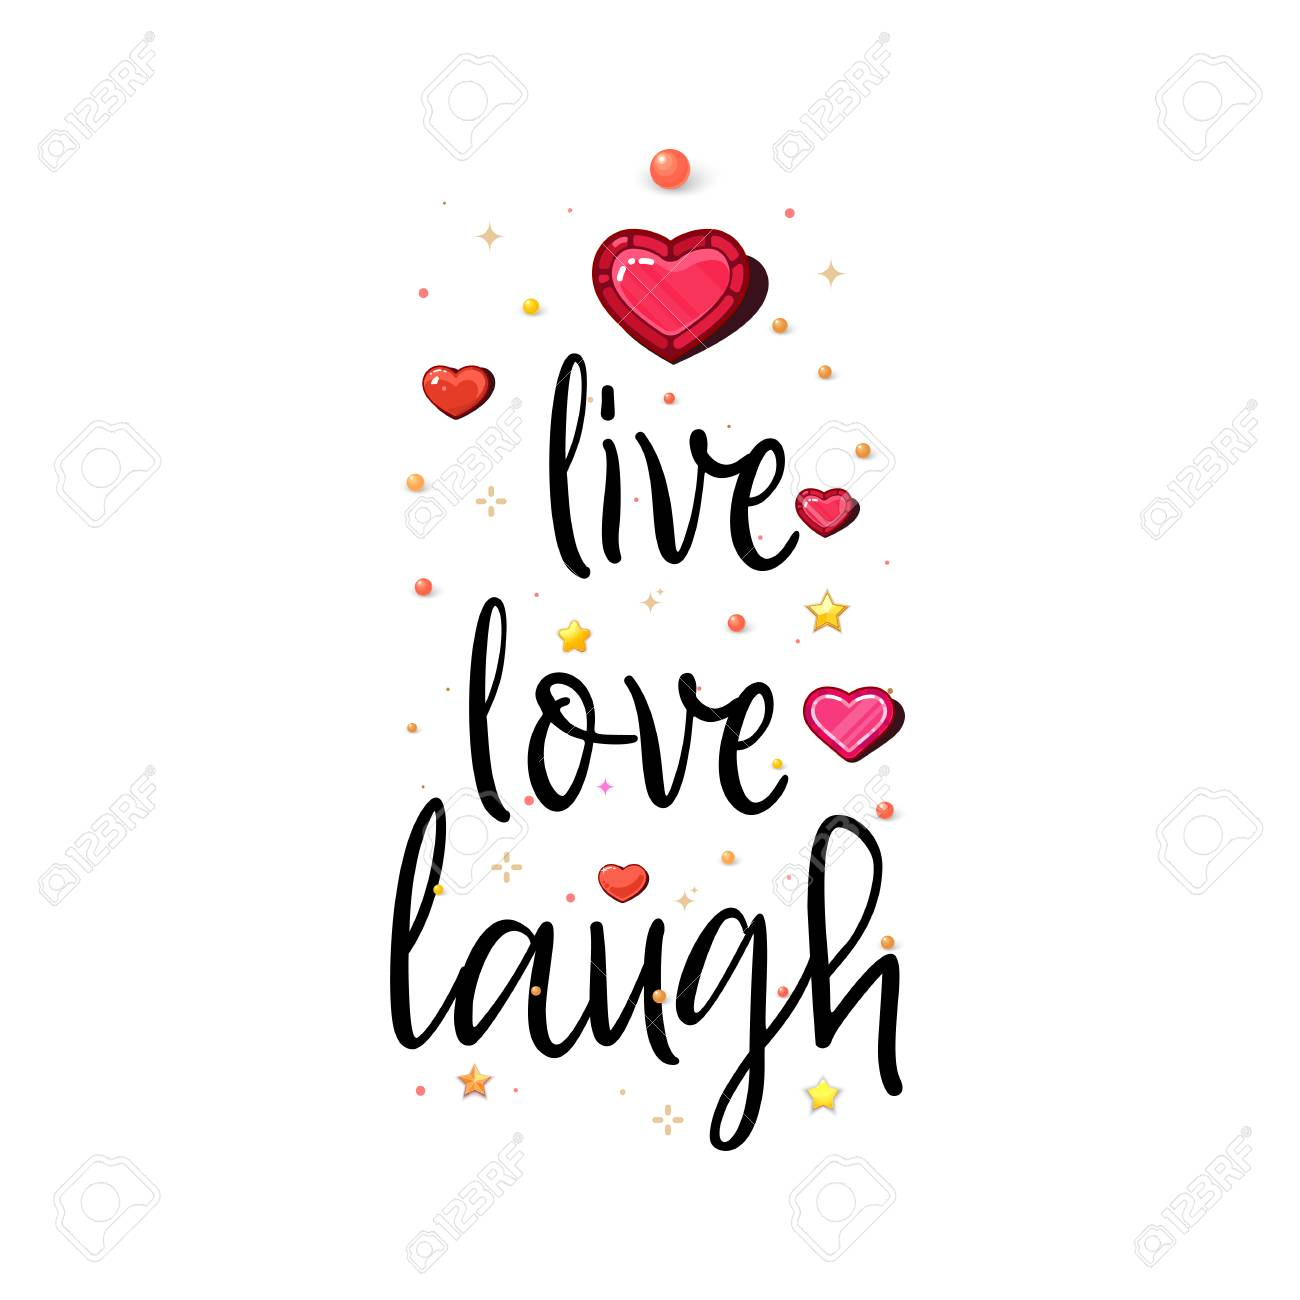 Live Love Laugh. The slogan of love on a white background in handwriting around realistic hearts and stars. - 127258001